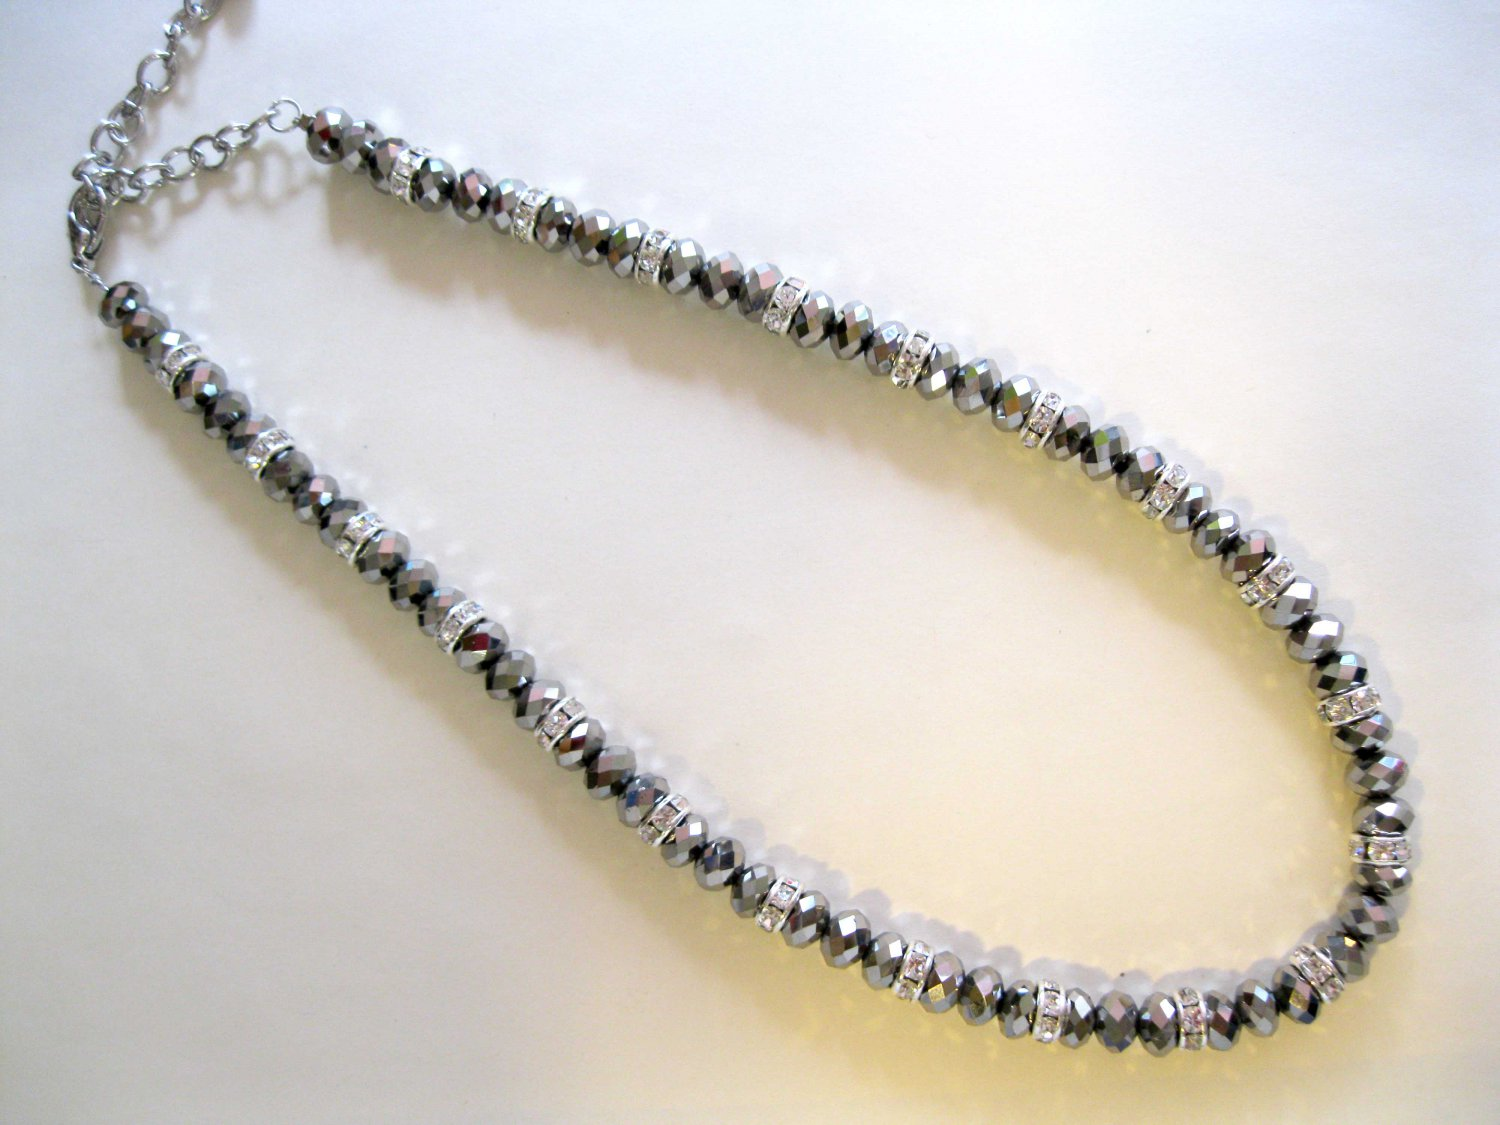 Grey necklace with crystals fashion jewelry gift idea